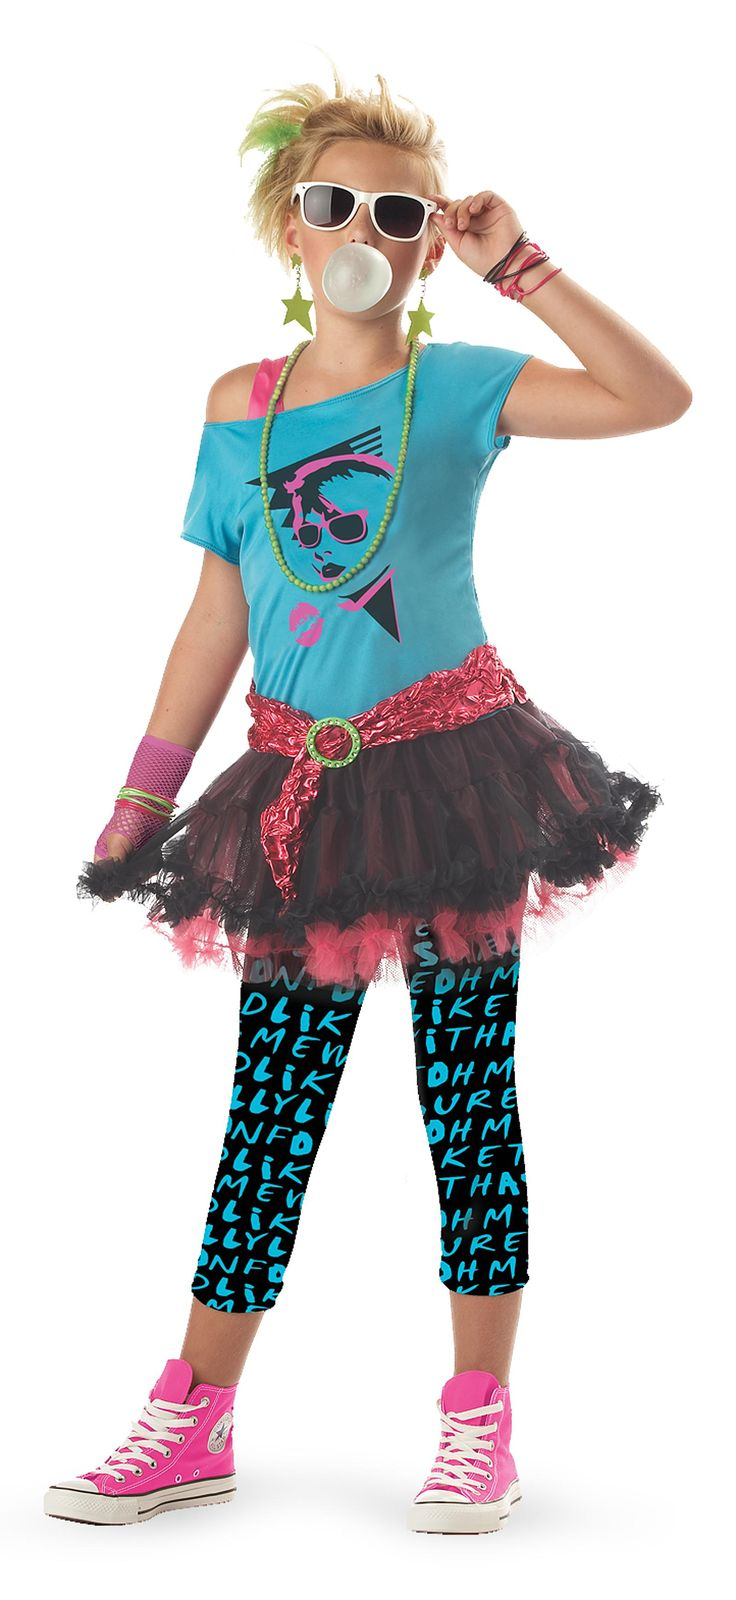 i have always loved the 80s and this is just another chance for my to dress for the my true time period